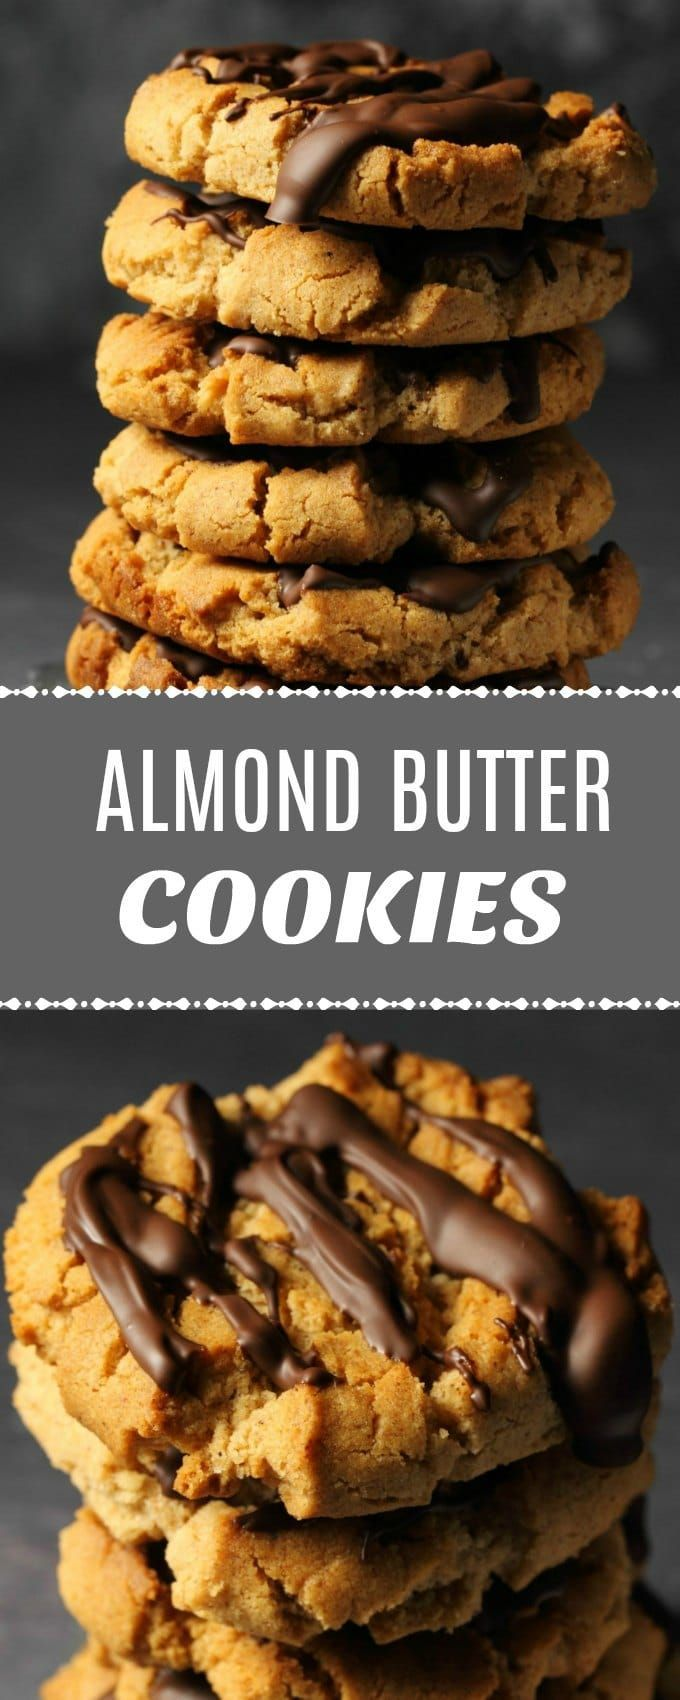 Crunchy Vegan Almond Butter Cookies Drizzled With Vegan Chocolate Perfect Blend Of Flavors In This Almond Butter Recipes Almond Butter Cookies Almond Recipes